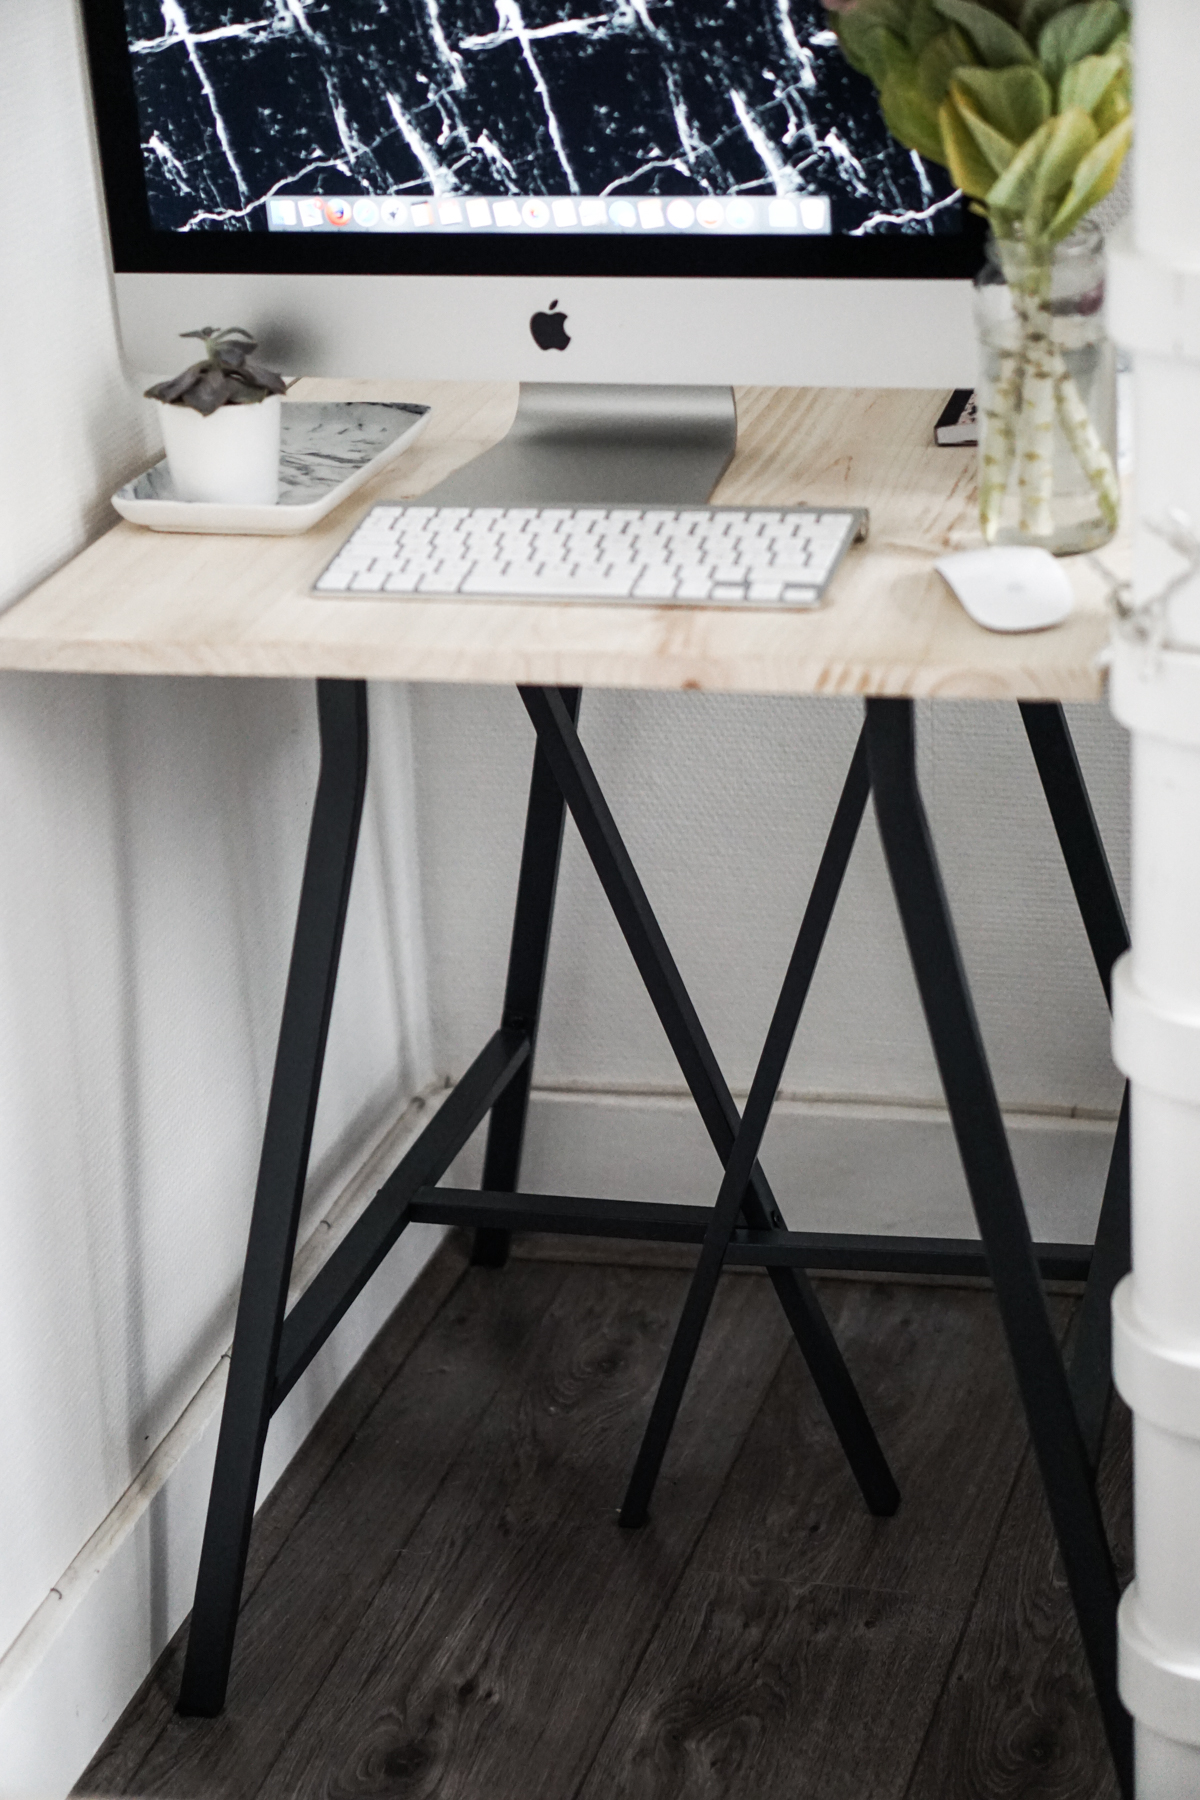 diy un bureau pour moins de 30 n o h o l i t a. Black Bedroom Furniture Sets. Home Design Ideas